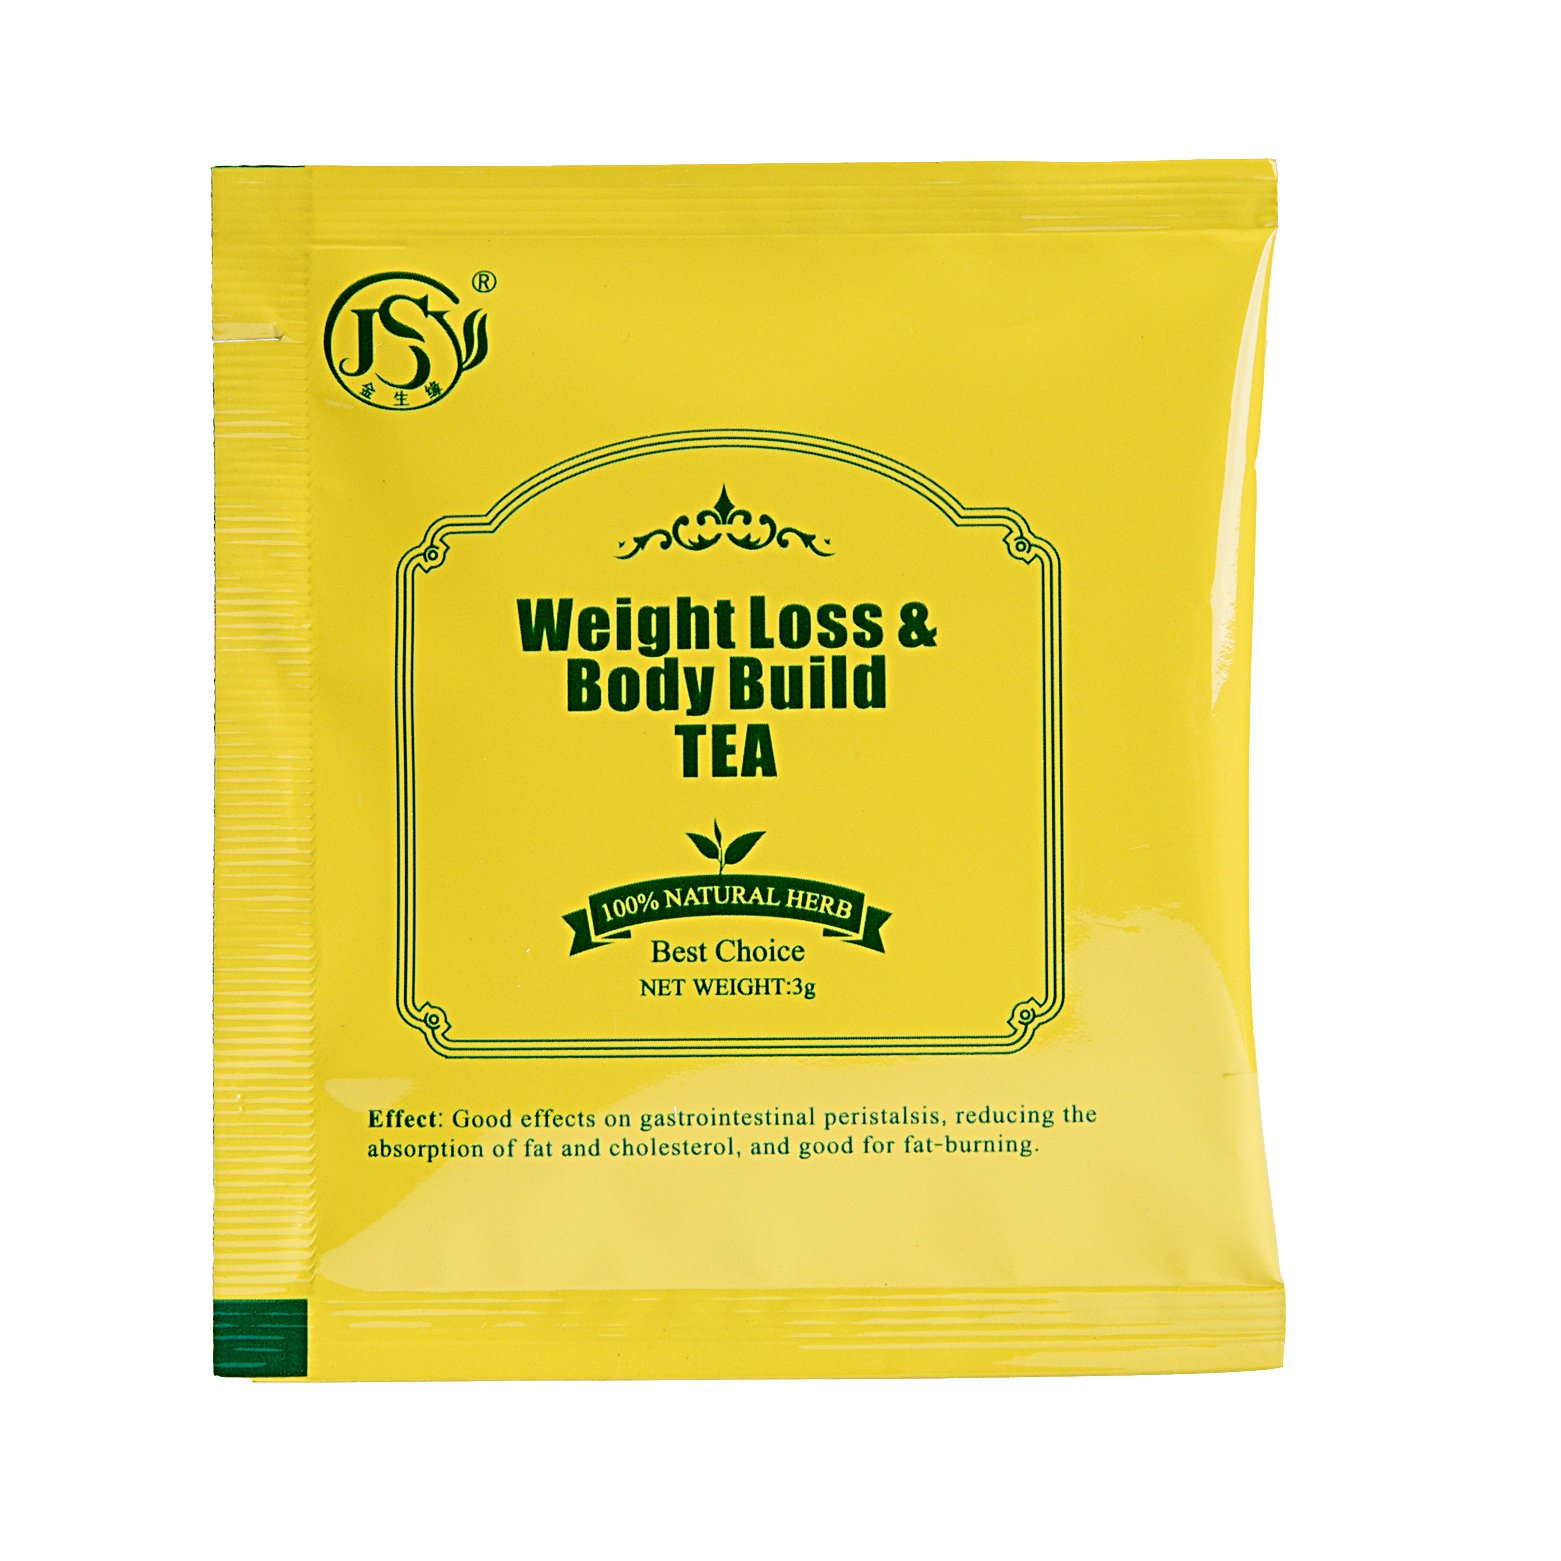 JSY 16 Day Detox Herbal Weight Loss Tea Premium Chinese Slimming Green Tea for Reduce Fat Lipo Targets Belly Fat, All Natural Blend of Oolong Tea Green Tea and Senna, Father\'s Day Gift for Health